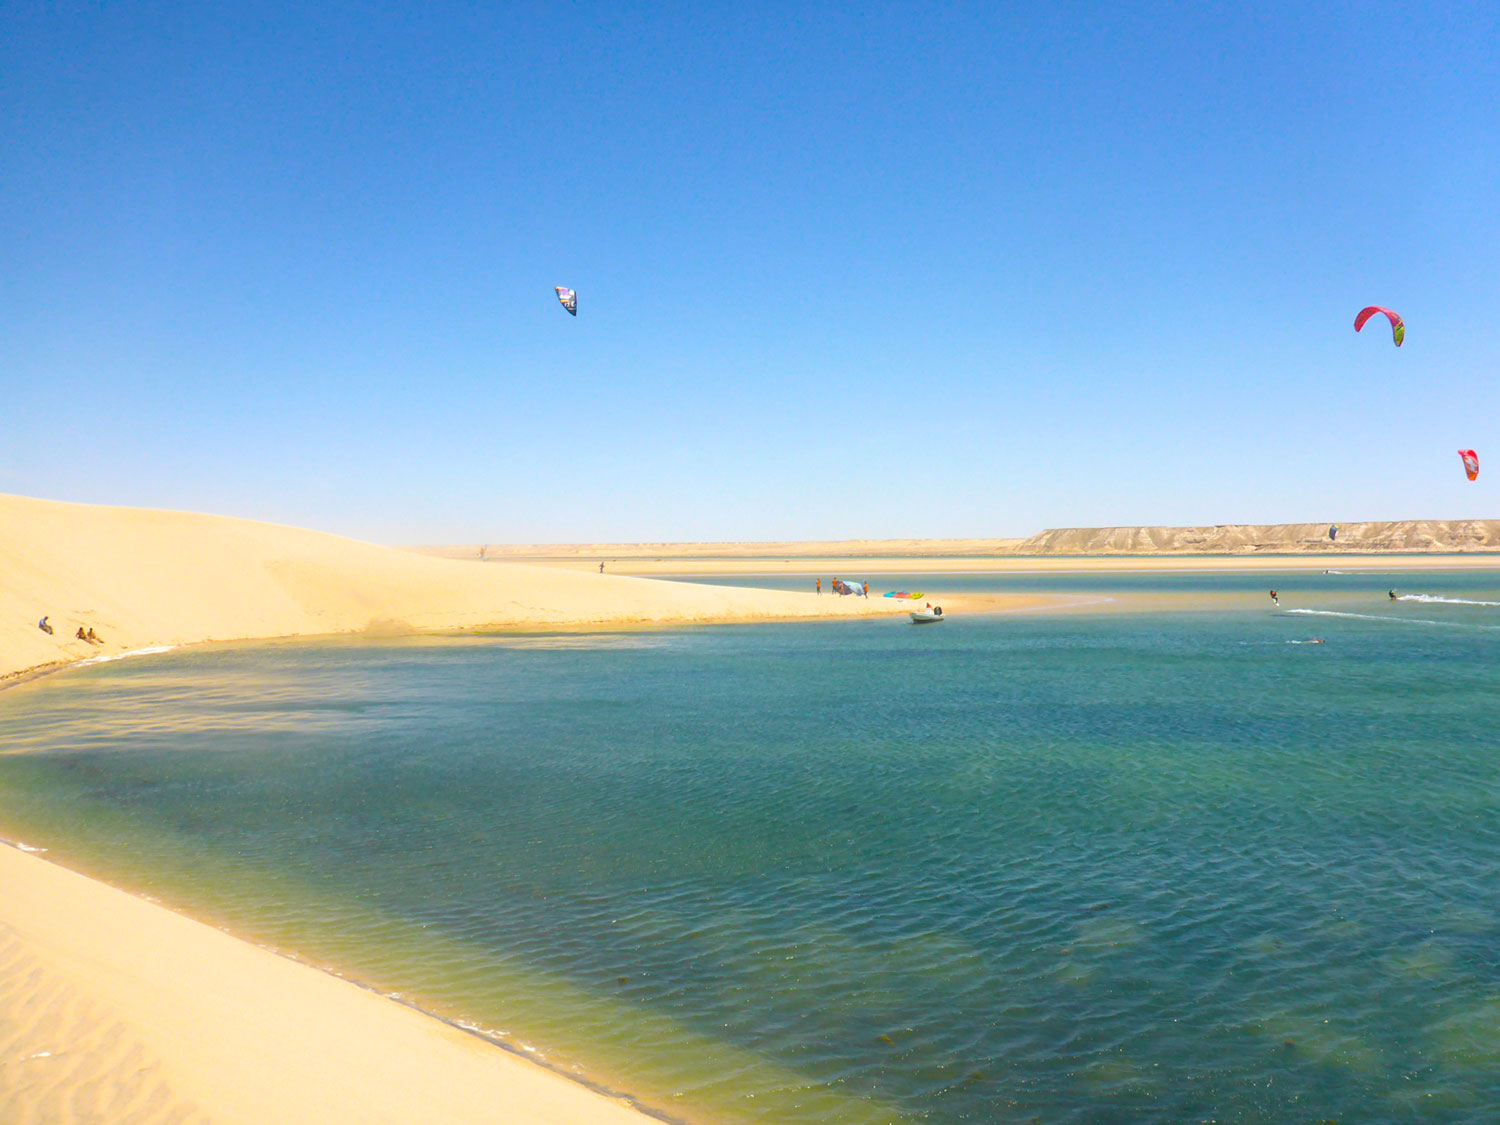 The-white-dune-kitesurfing-coaching-intermdiate-holiday-downwinder.jpg